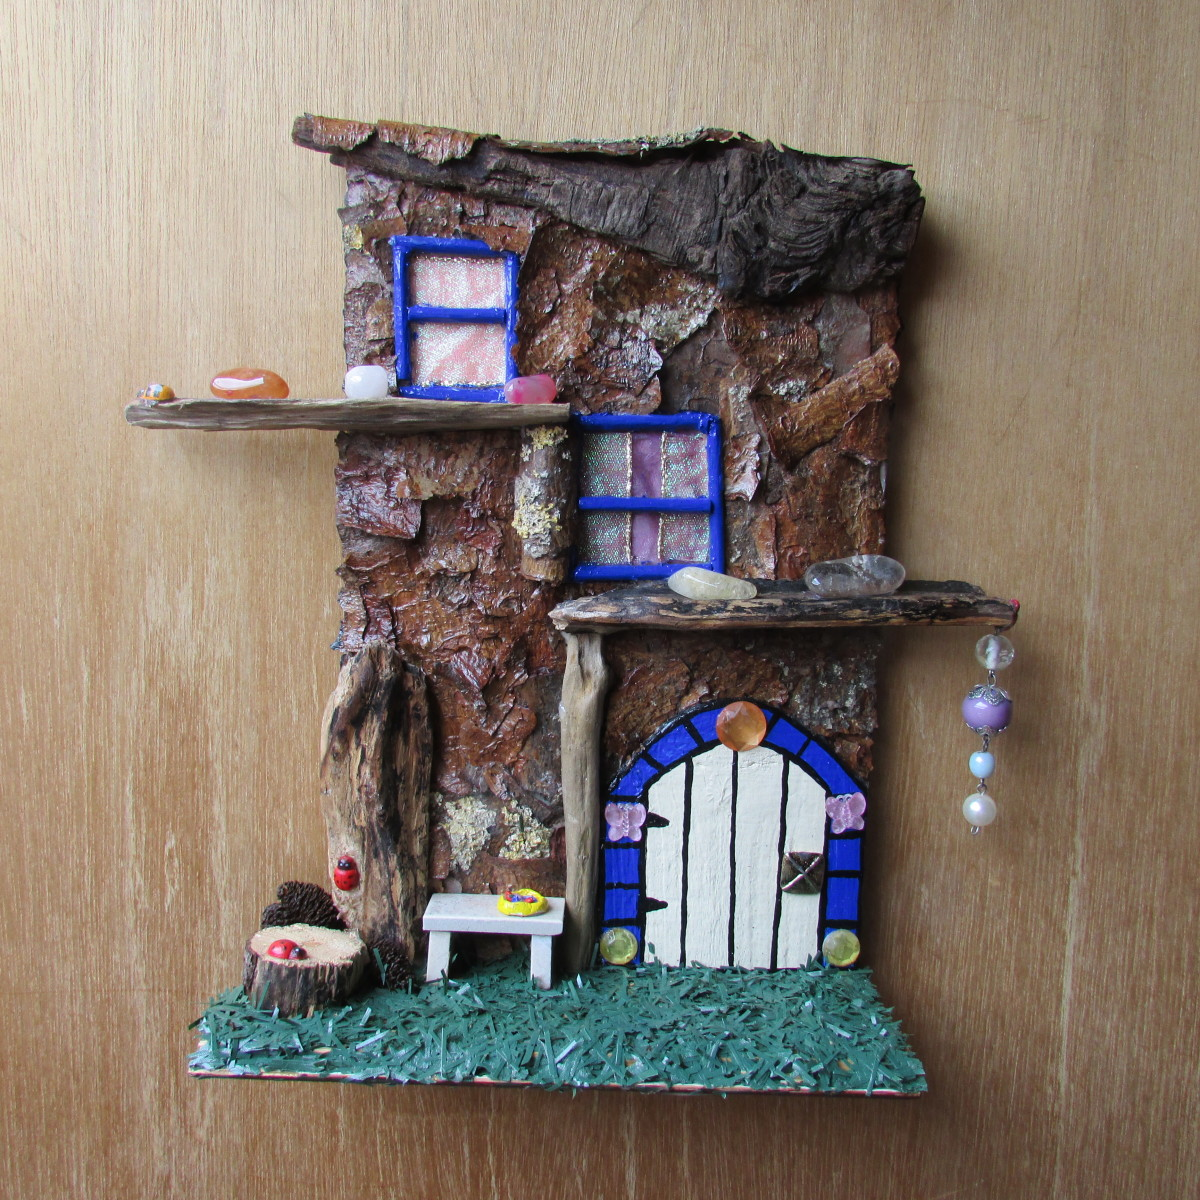 How to Make Fairy House Windows Doors out of Wood